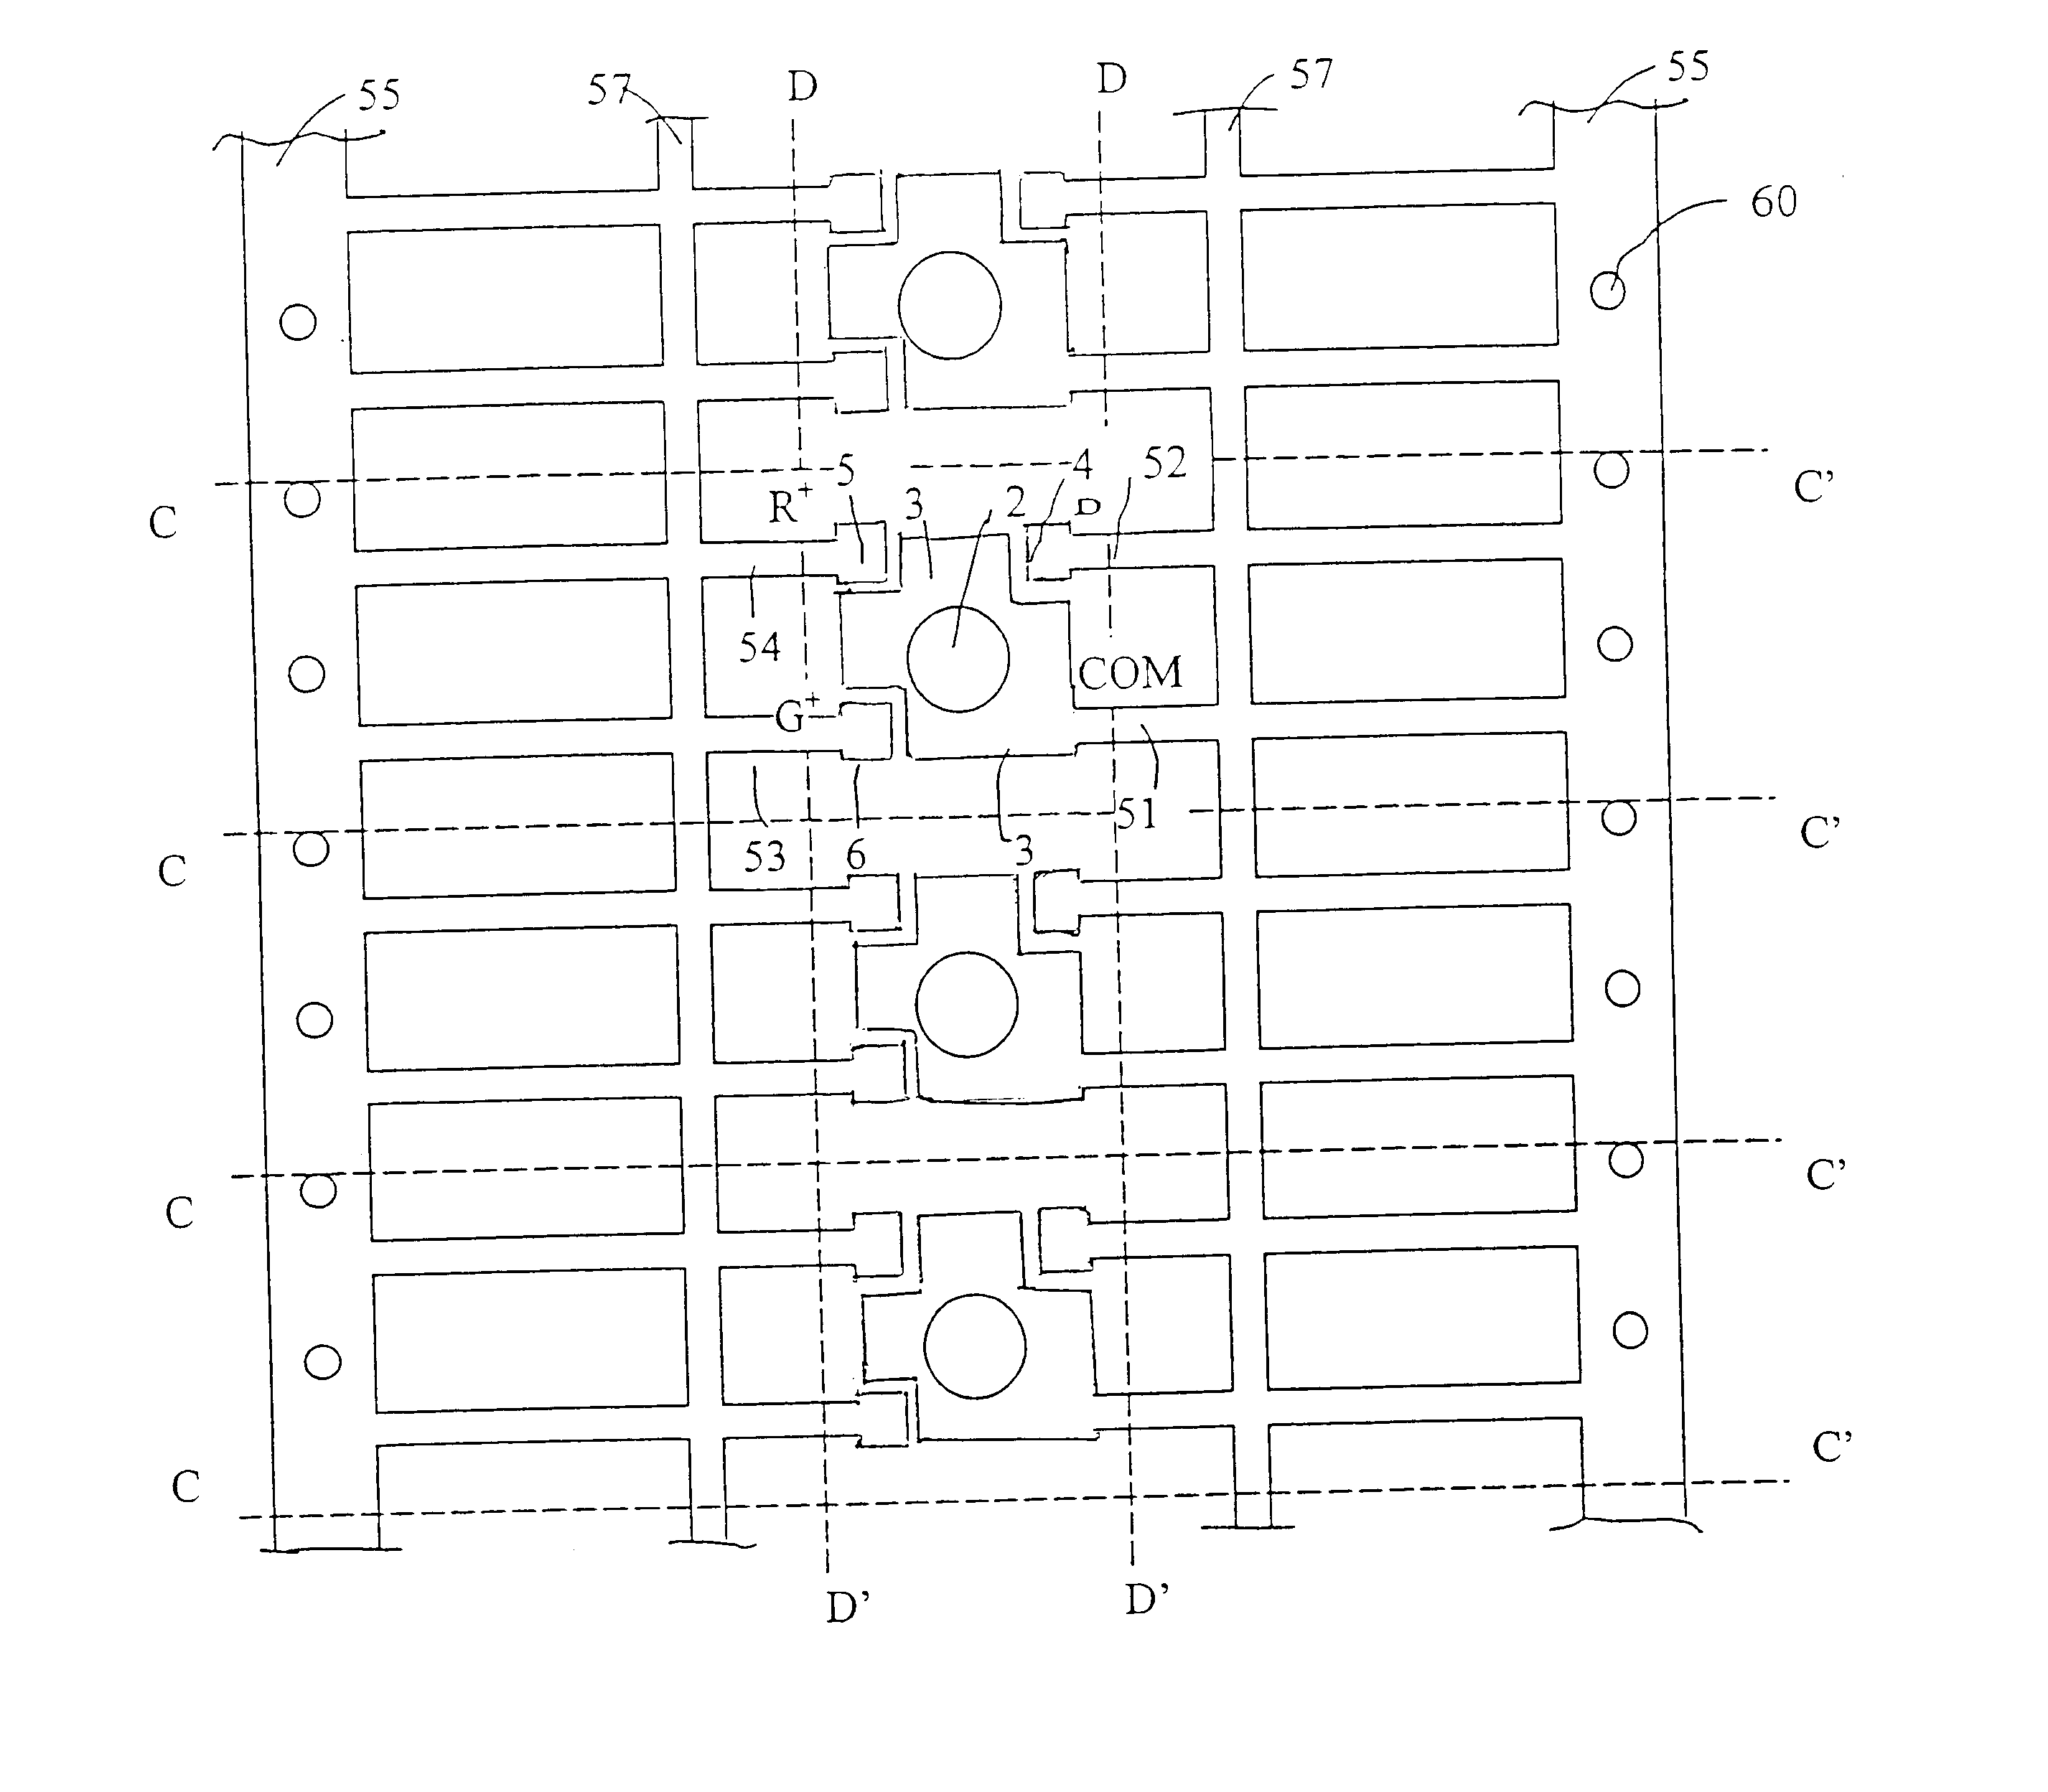 US6621223 in addition Led Light Emitting Diode also Smd2835 60ledsmeter Flexible Led Strip in addition LED furthermore  on led positive and negative legs